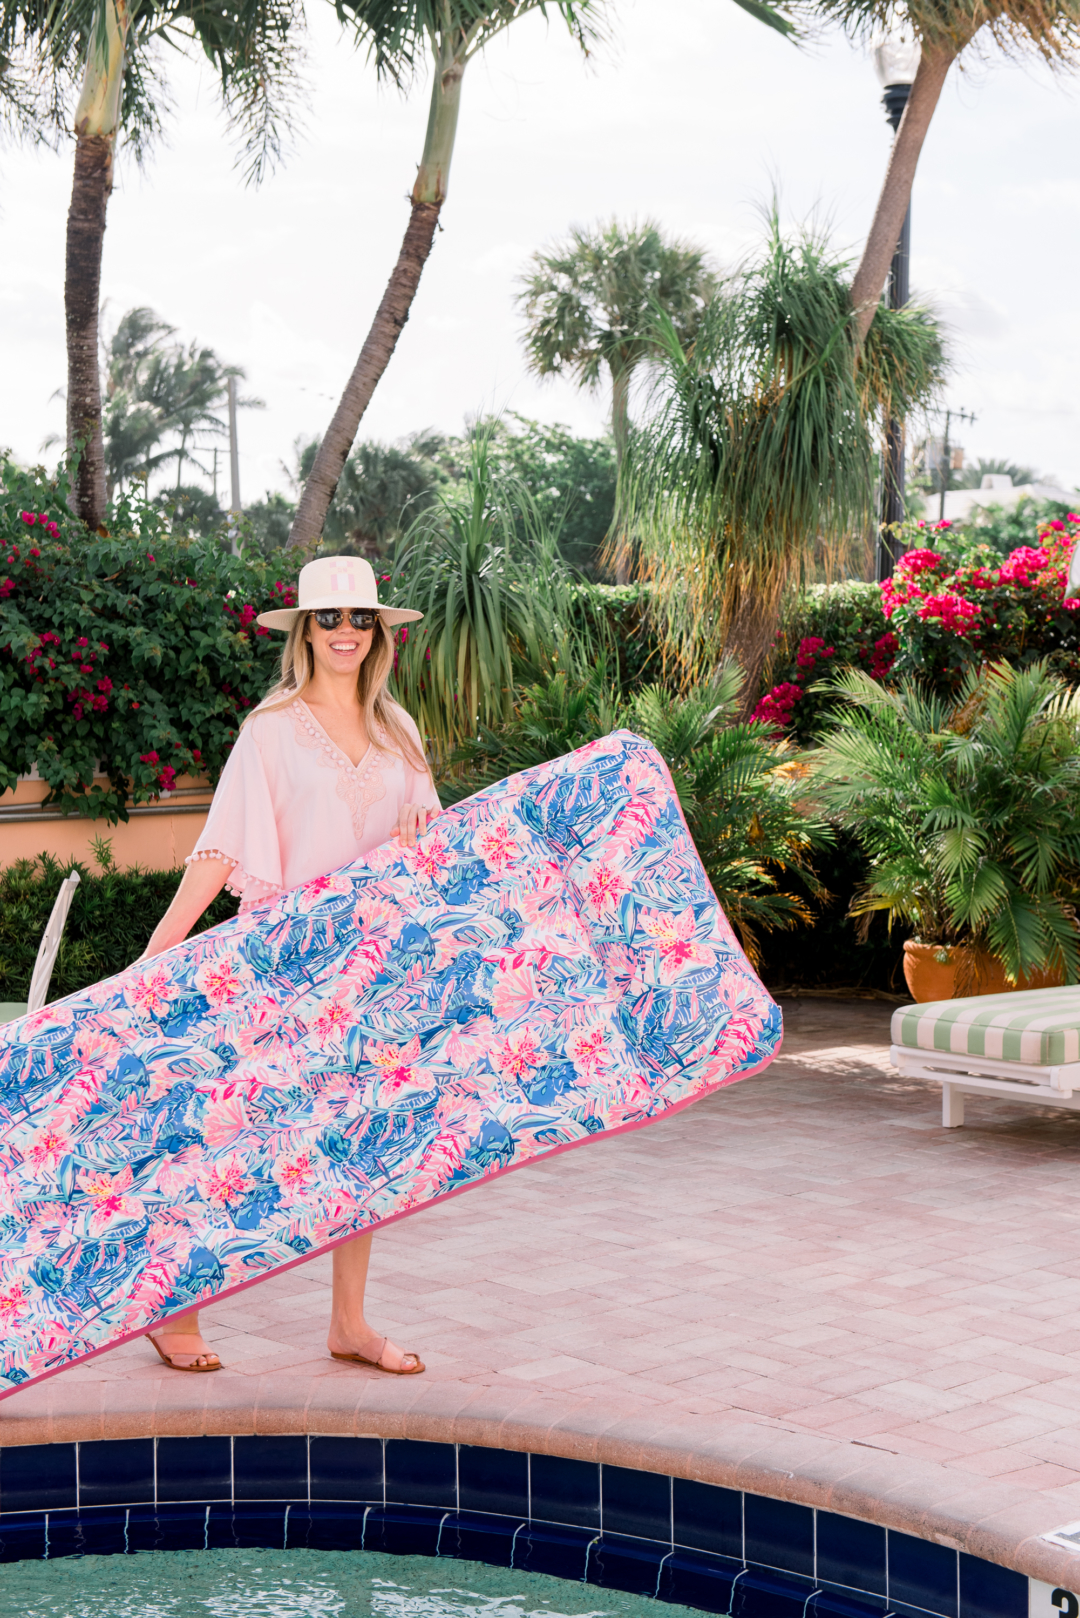 Home Pottery Barn X Lilly Pulitzer Palm Beach Lately